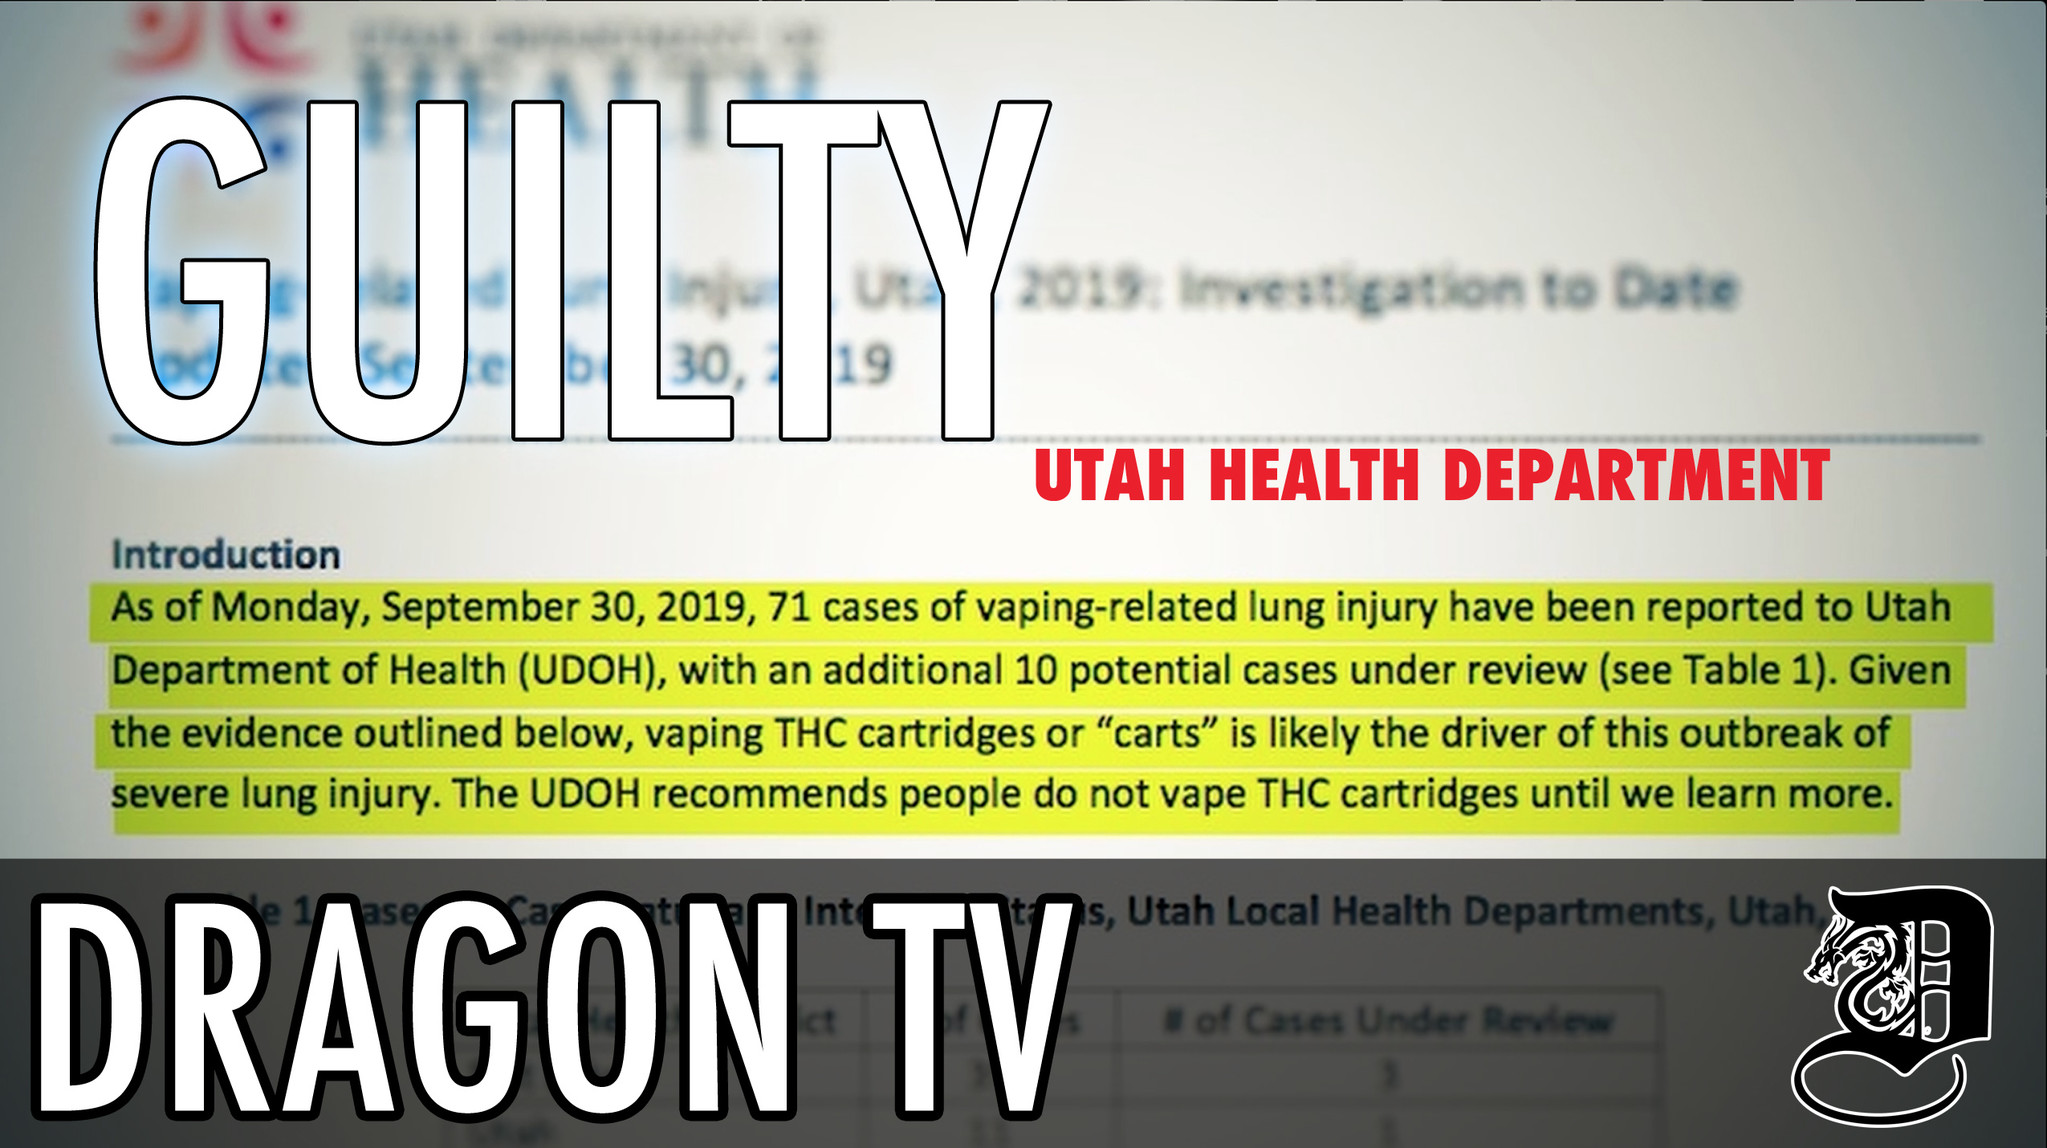 VAPE NEWS: UTAH Health Department FACTS - Why is media not talking about this???